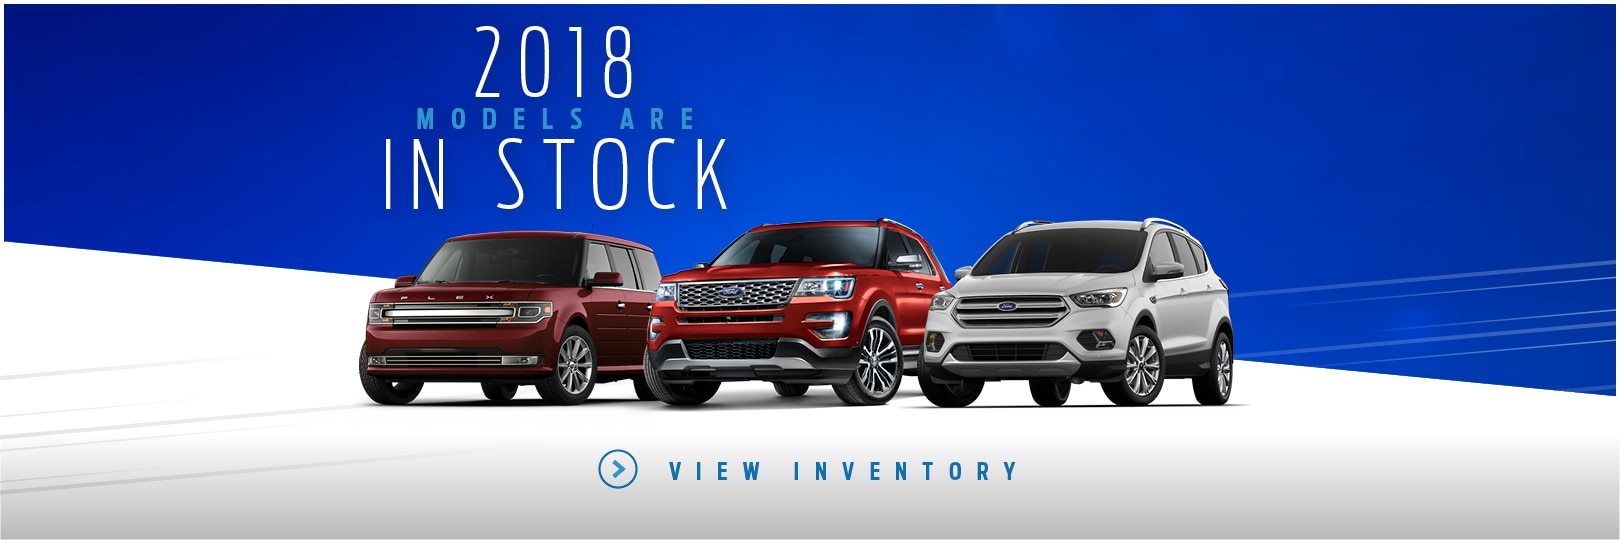 Airport Ford Used Car Inventory